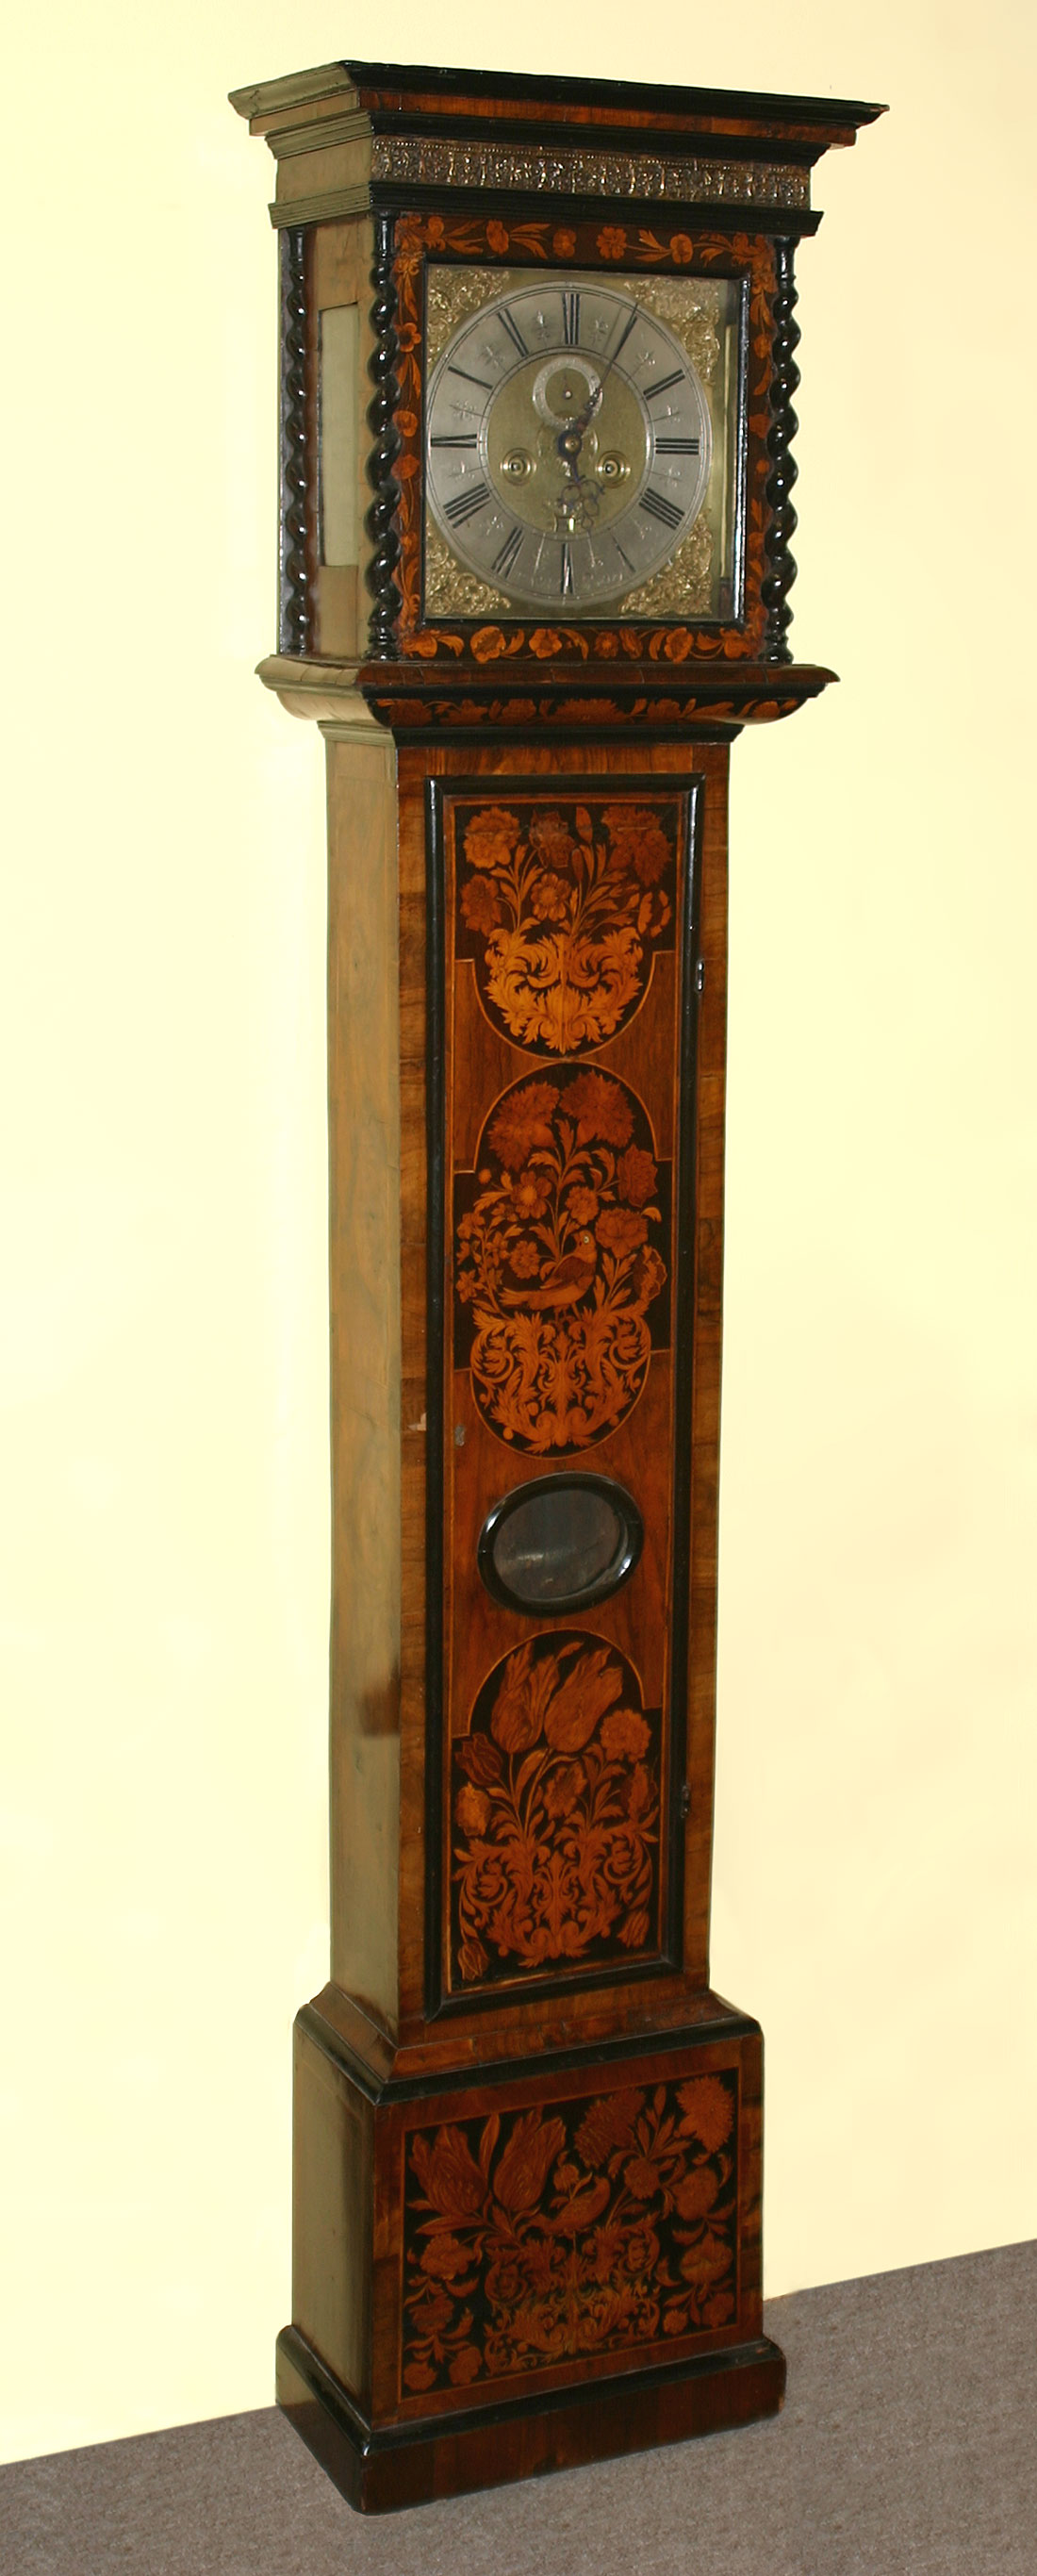 william and mary chair crushed velvet tub covers floral marquetry inlaid tall case clock